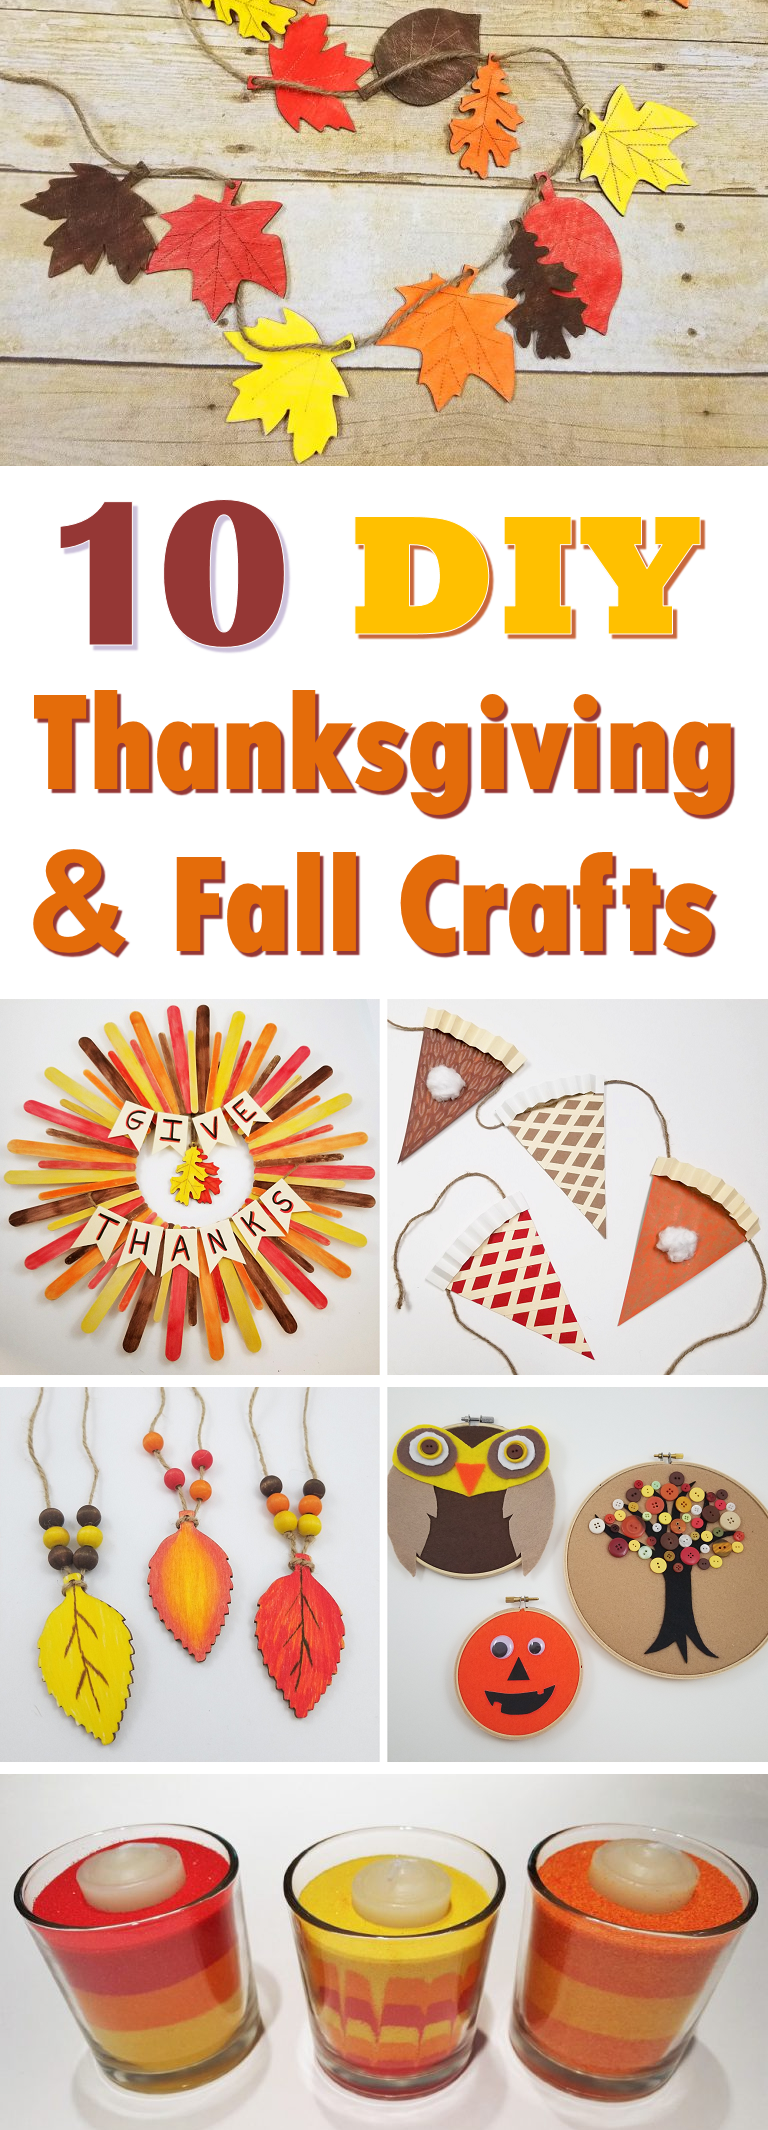 Crafts And Decorations To Help You Celebrate Thanksgiving The Fall Season Check